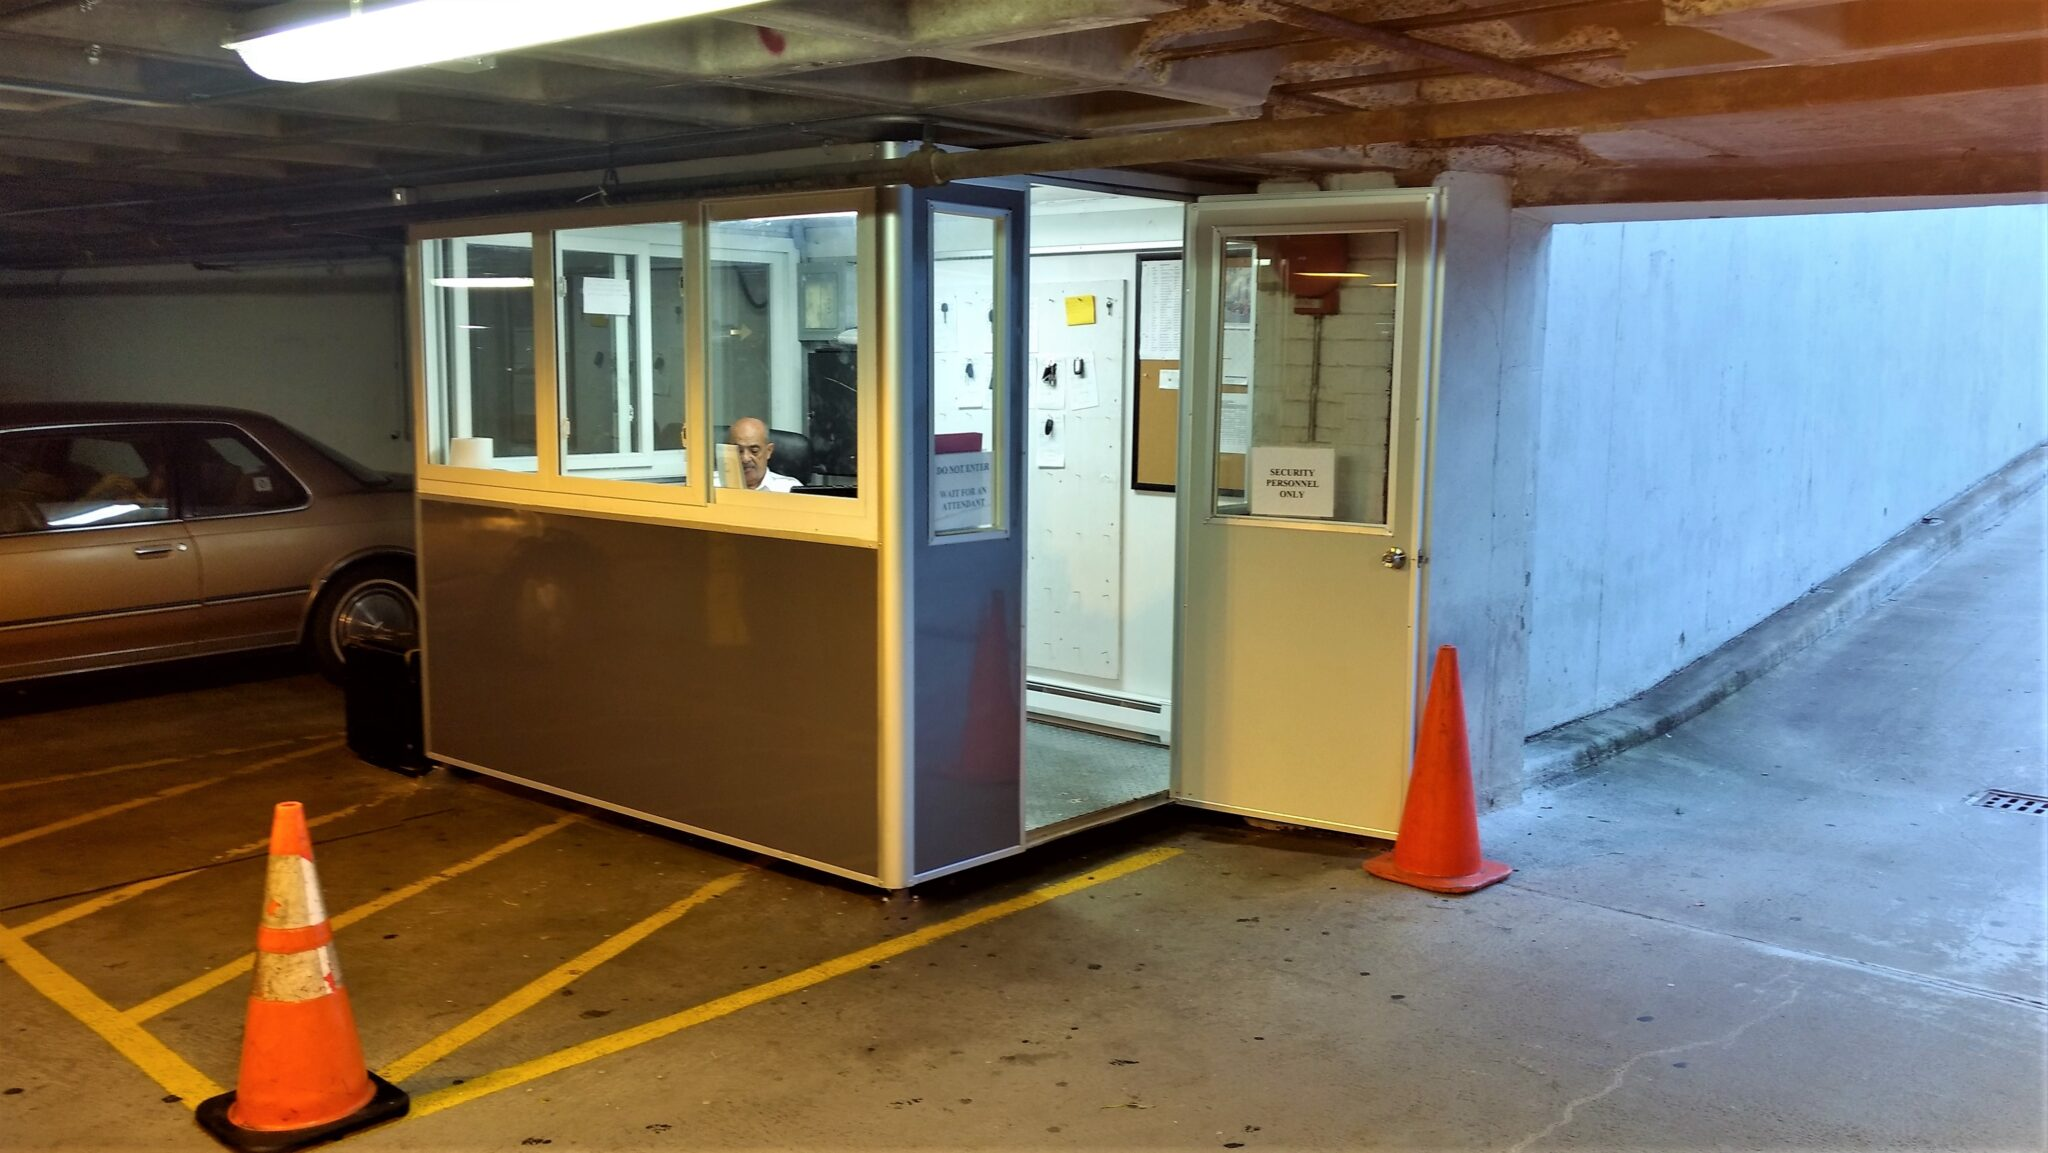 6x8 Parking Booth in Fort Lee, NJ at Condo Parking Garage with Tinted Windows, Key Hooks, and Ethernet Port and Phone line